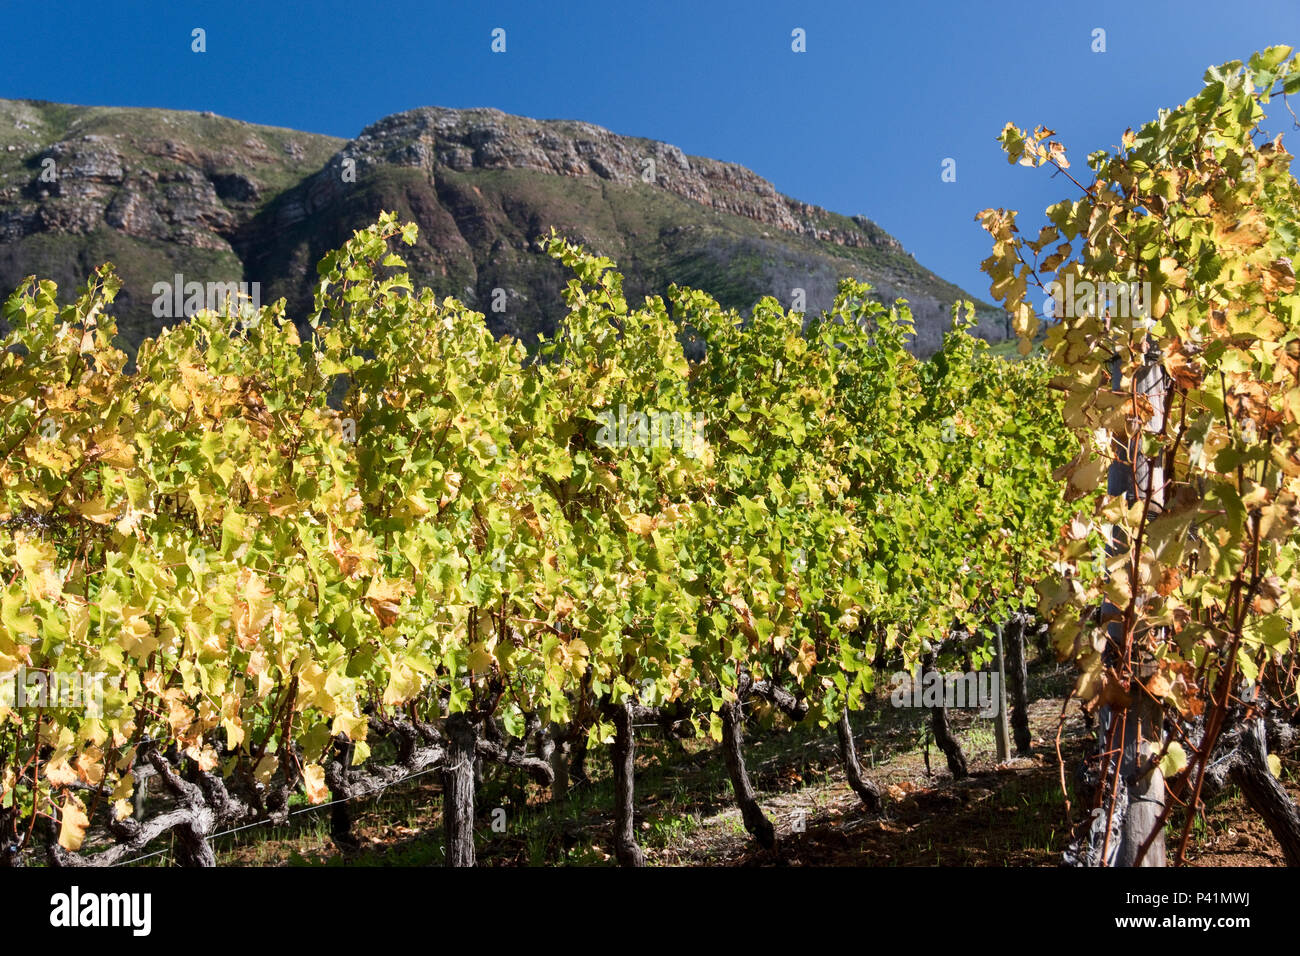 Vines grow on wine estates below Table Mountain, in the suburb of Constantia, Cape Town, South Africa. - Stock Image